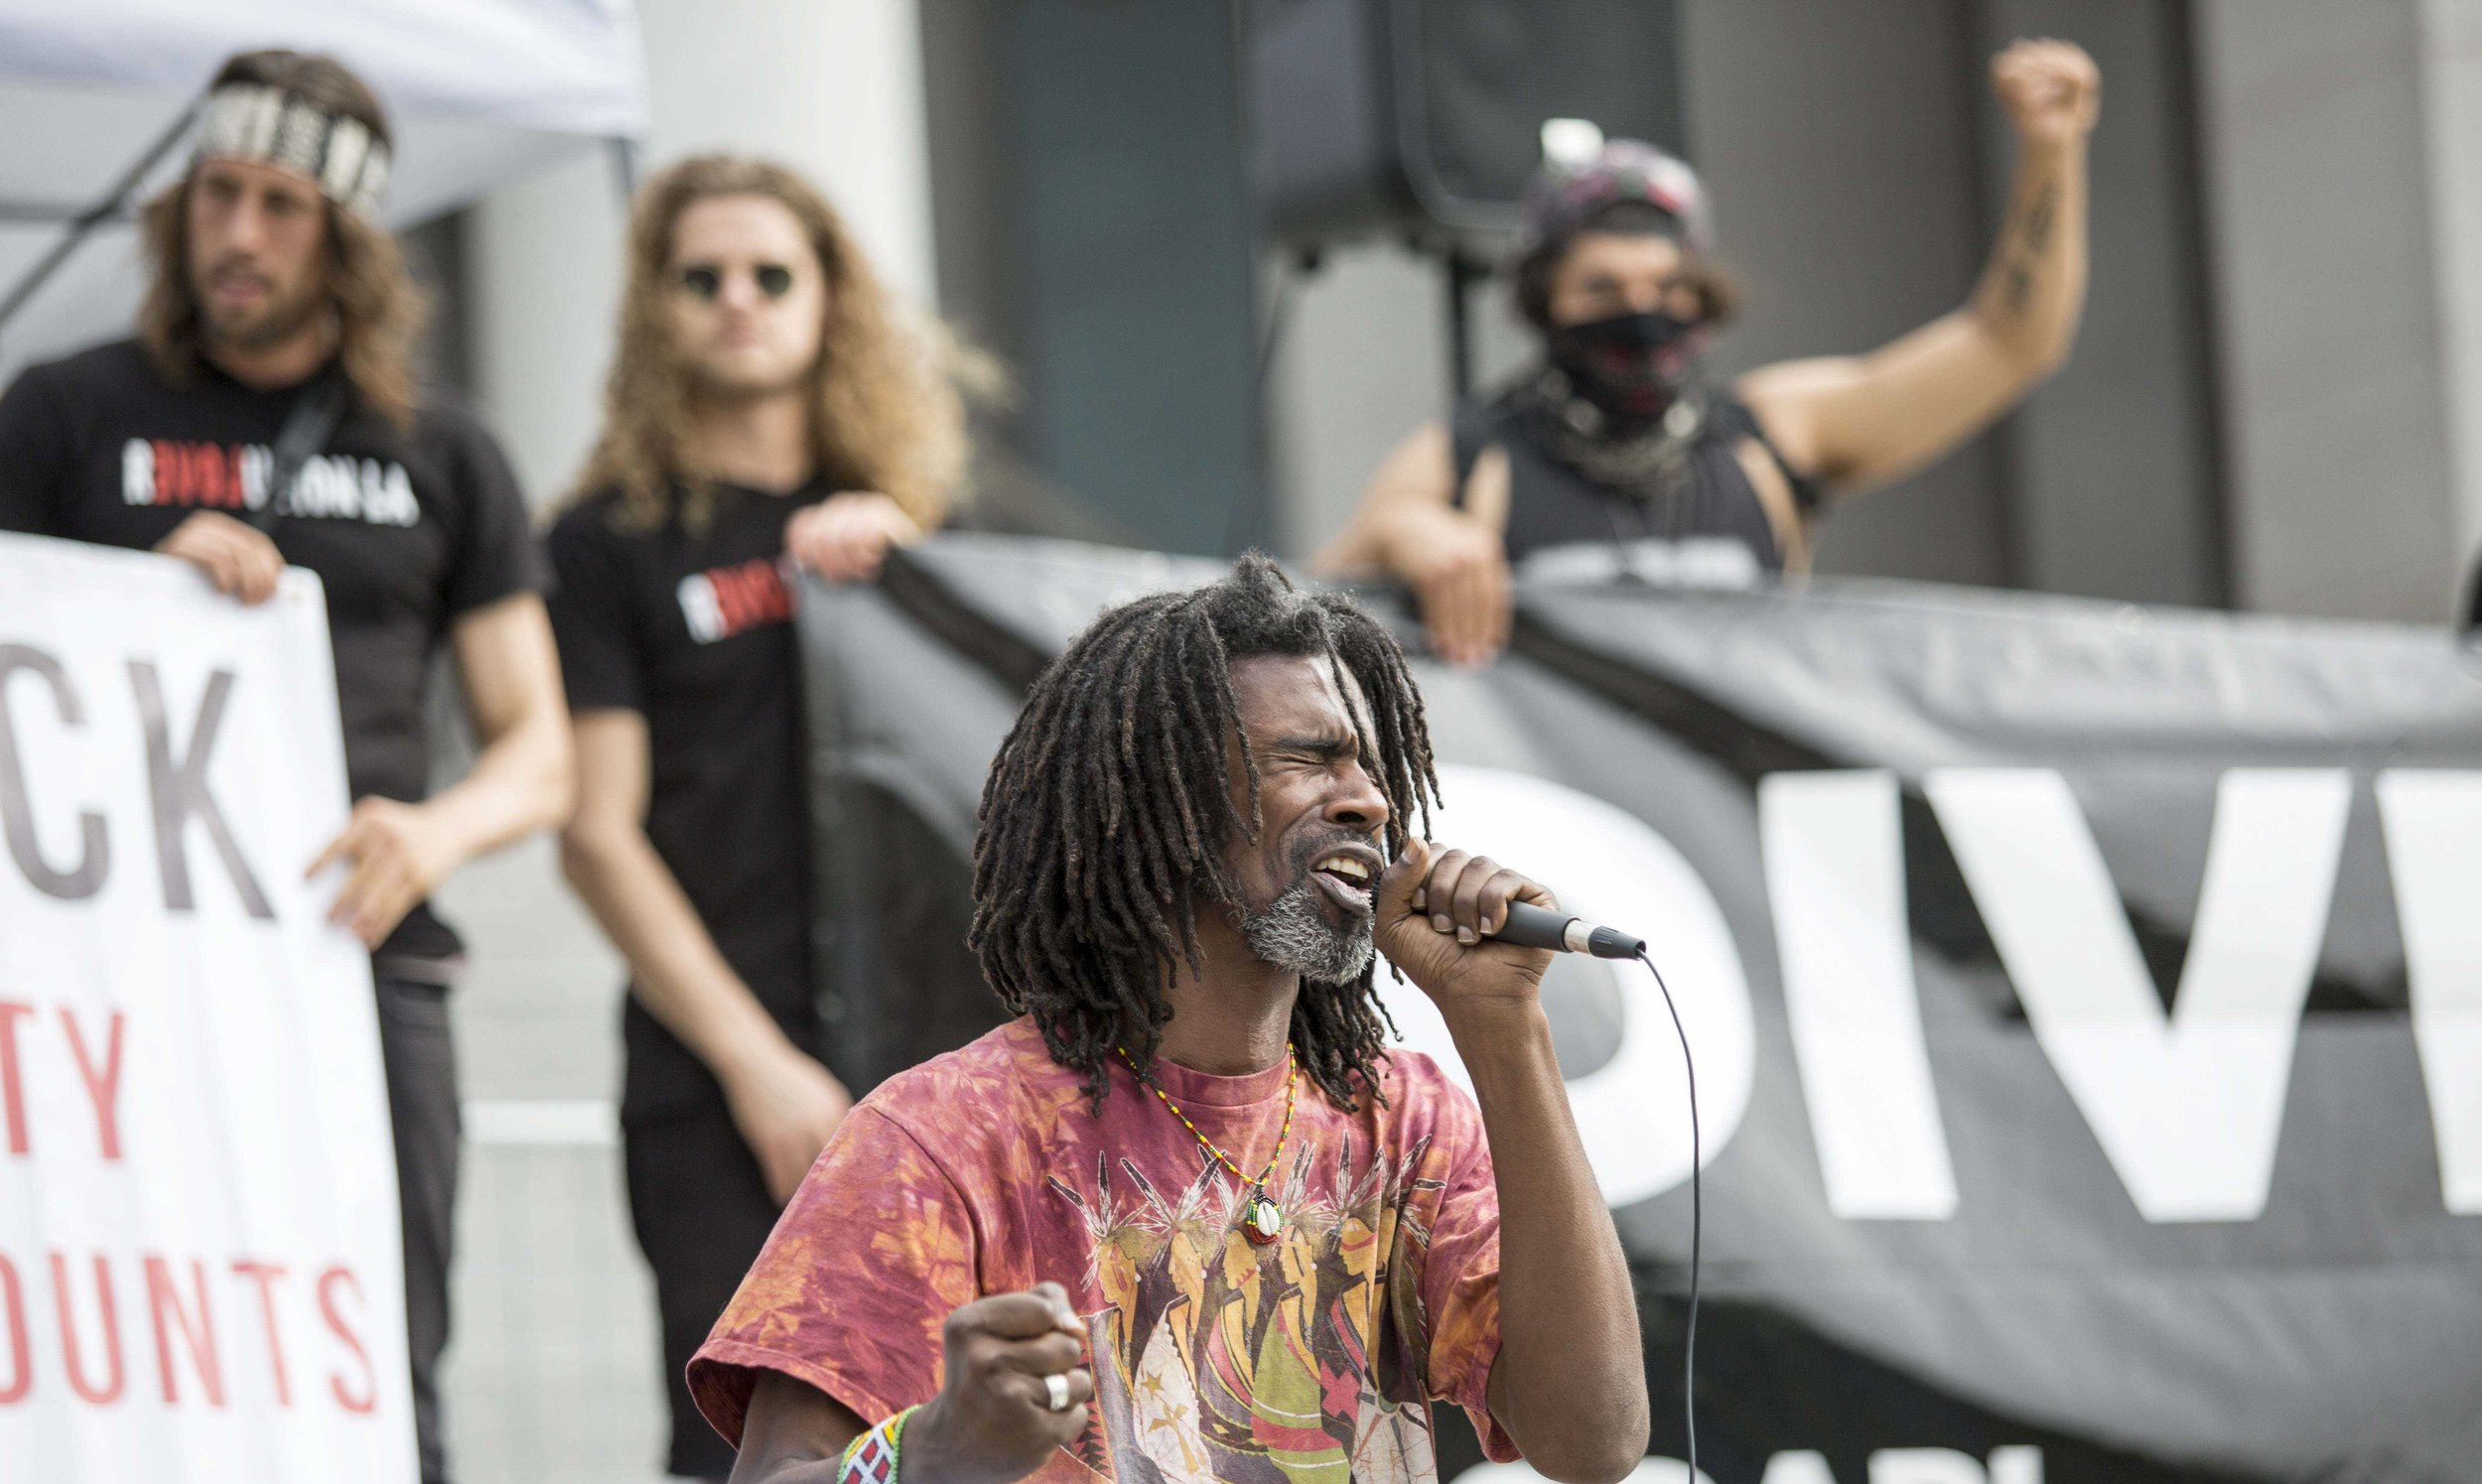 """Kor Element, a Bernie Sanders Supporter, World Peace Poet and Hip Hop Healer and NAPL activist performs a spoken word peace at the the Divest LA rally at Los Angles City Hall in Downtown Los Angles, Calif., Friday March 10 2017. Kor Element is photographed mid performance as a crowd of Divest LA demonstrators applauded him as he sings, """"Sometimes you gotta figure out what you stand for, cause if you don't stand for something, you can fall for anything"""". (Photo by Matthew Martin)"""